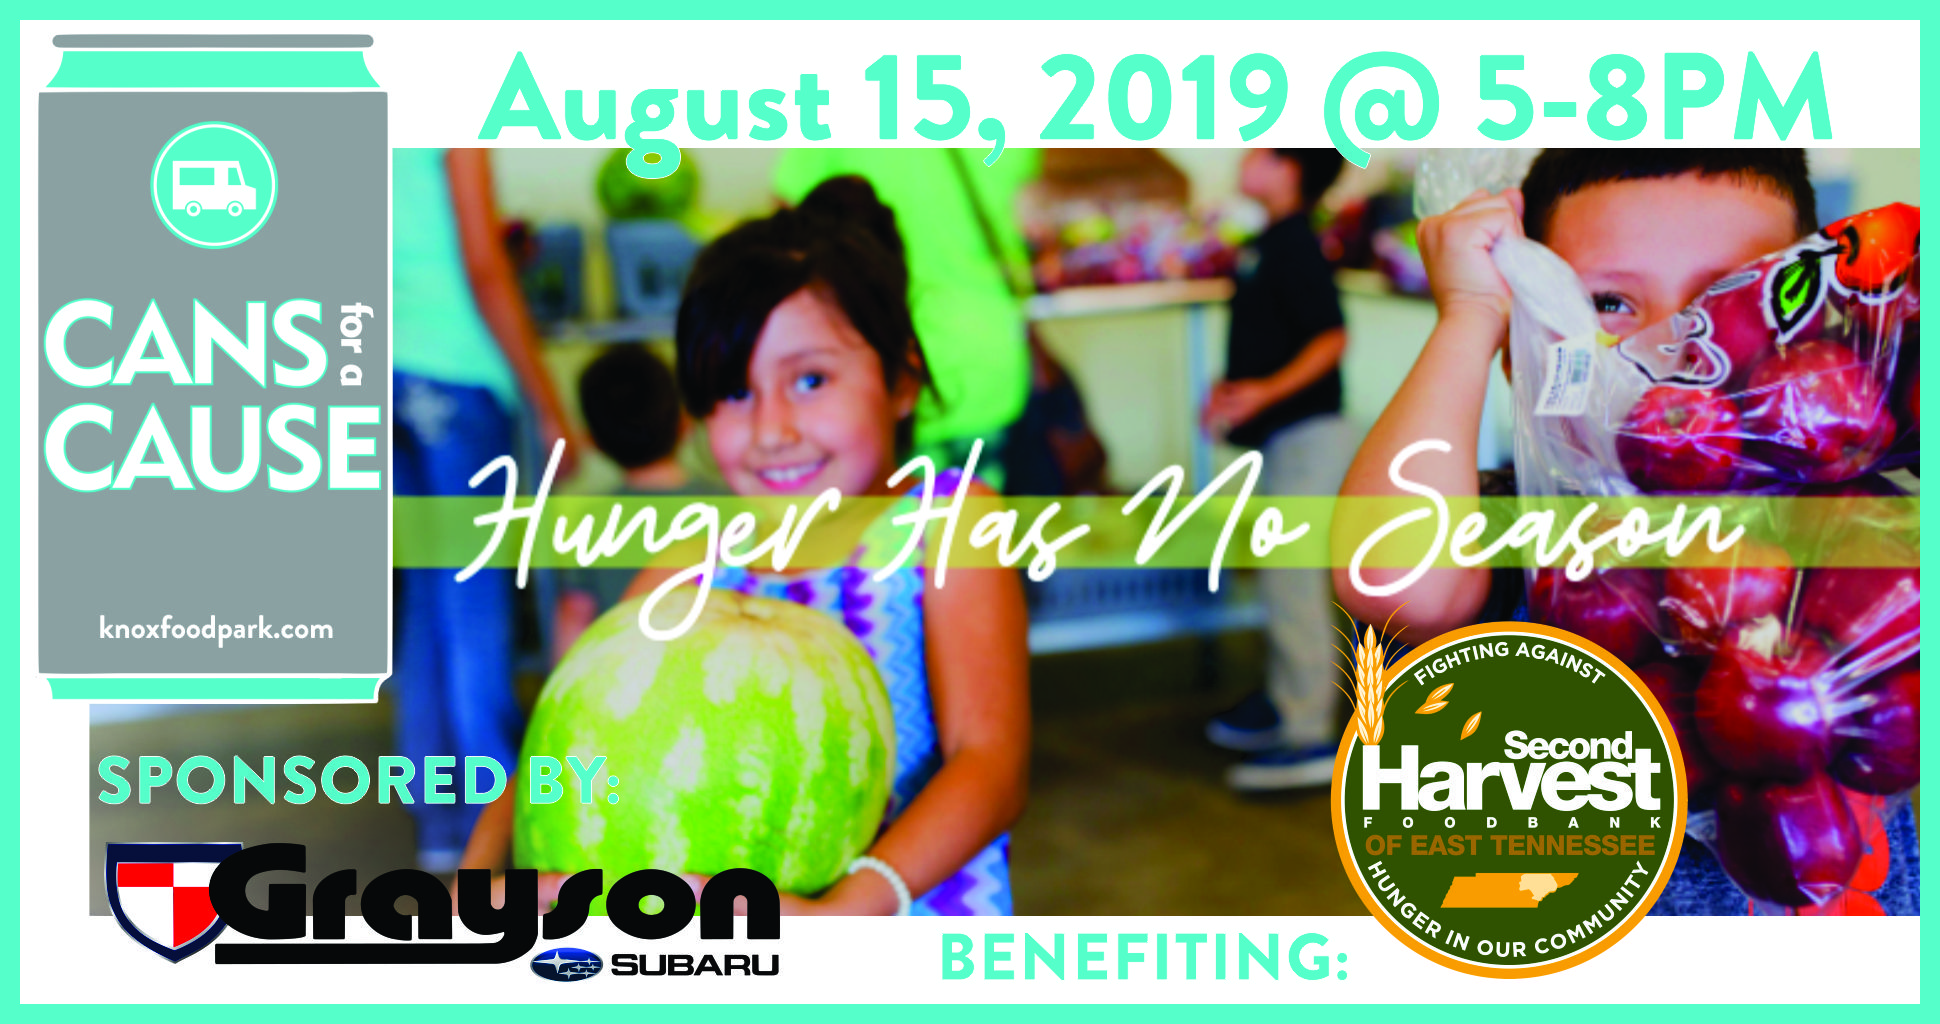 Second Harvest ETN cans for a cause